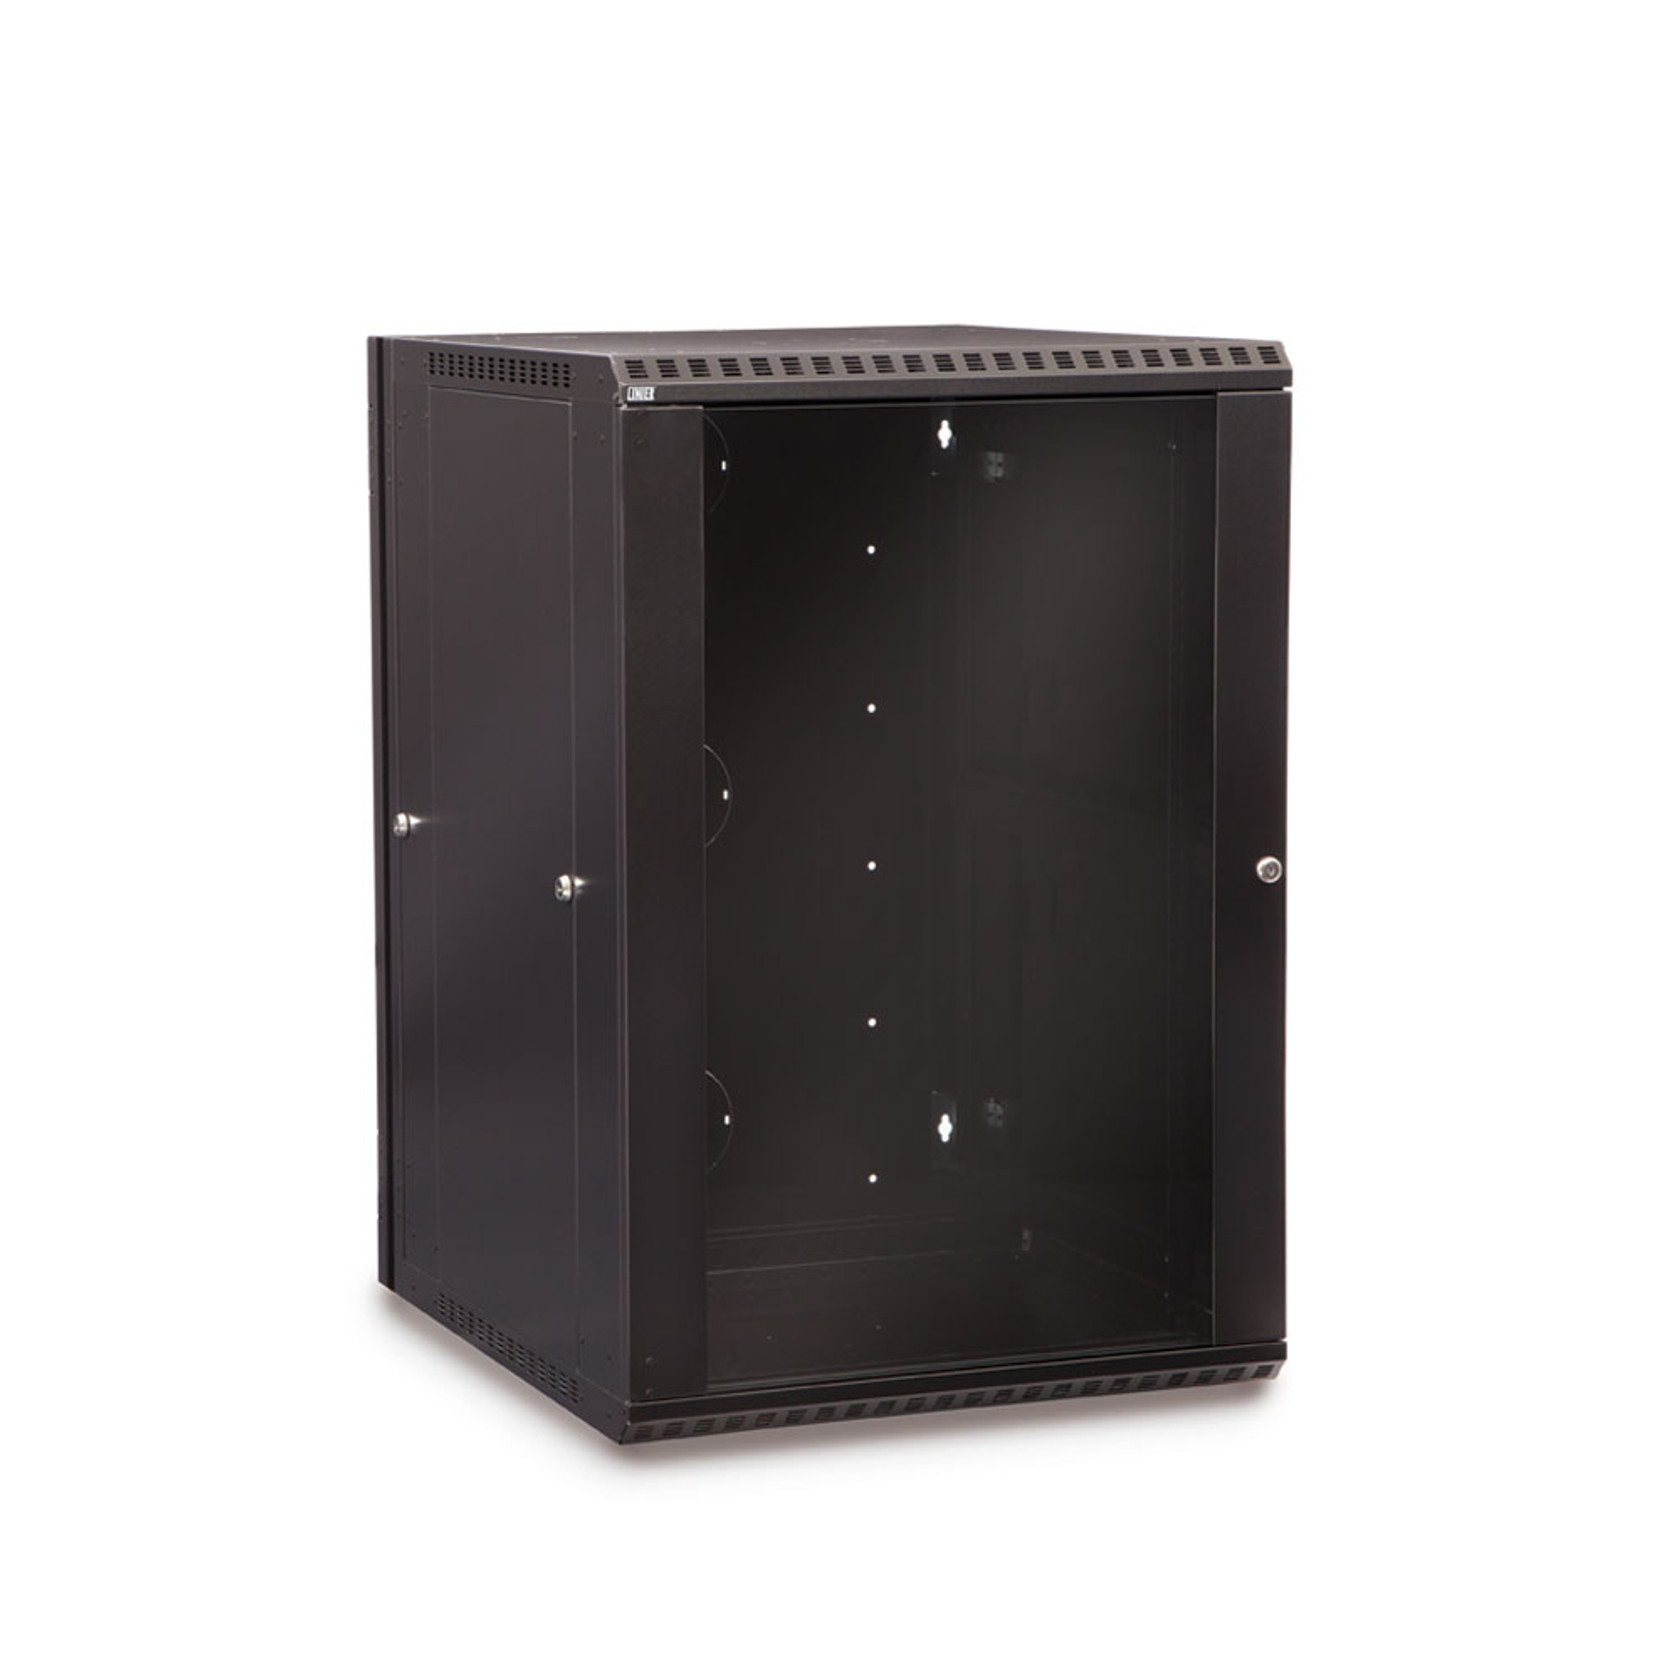 Swing Out Wall Mount Cabinets Linier Swing Out Wall Mount Cabinet